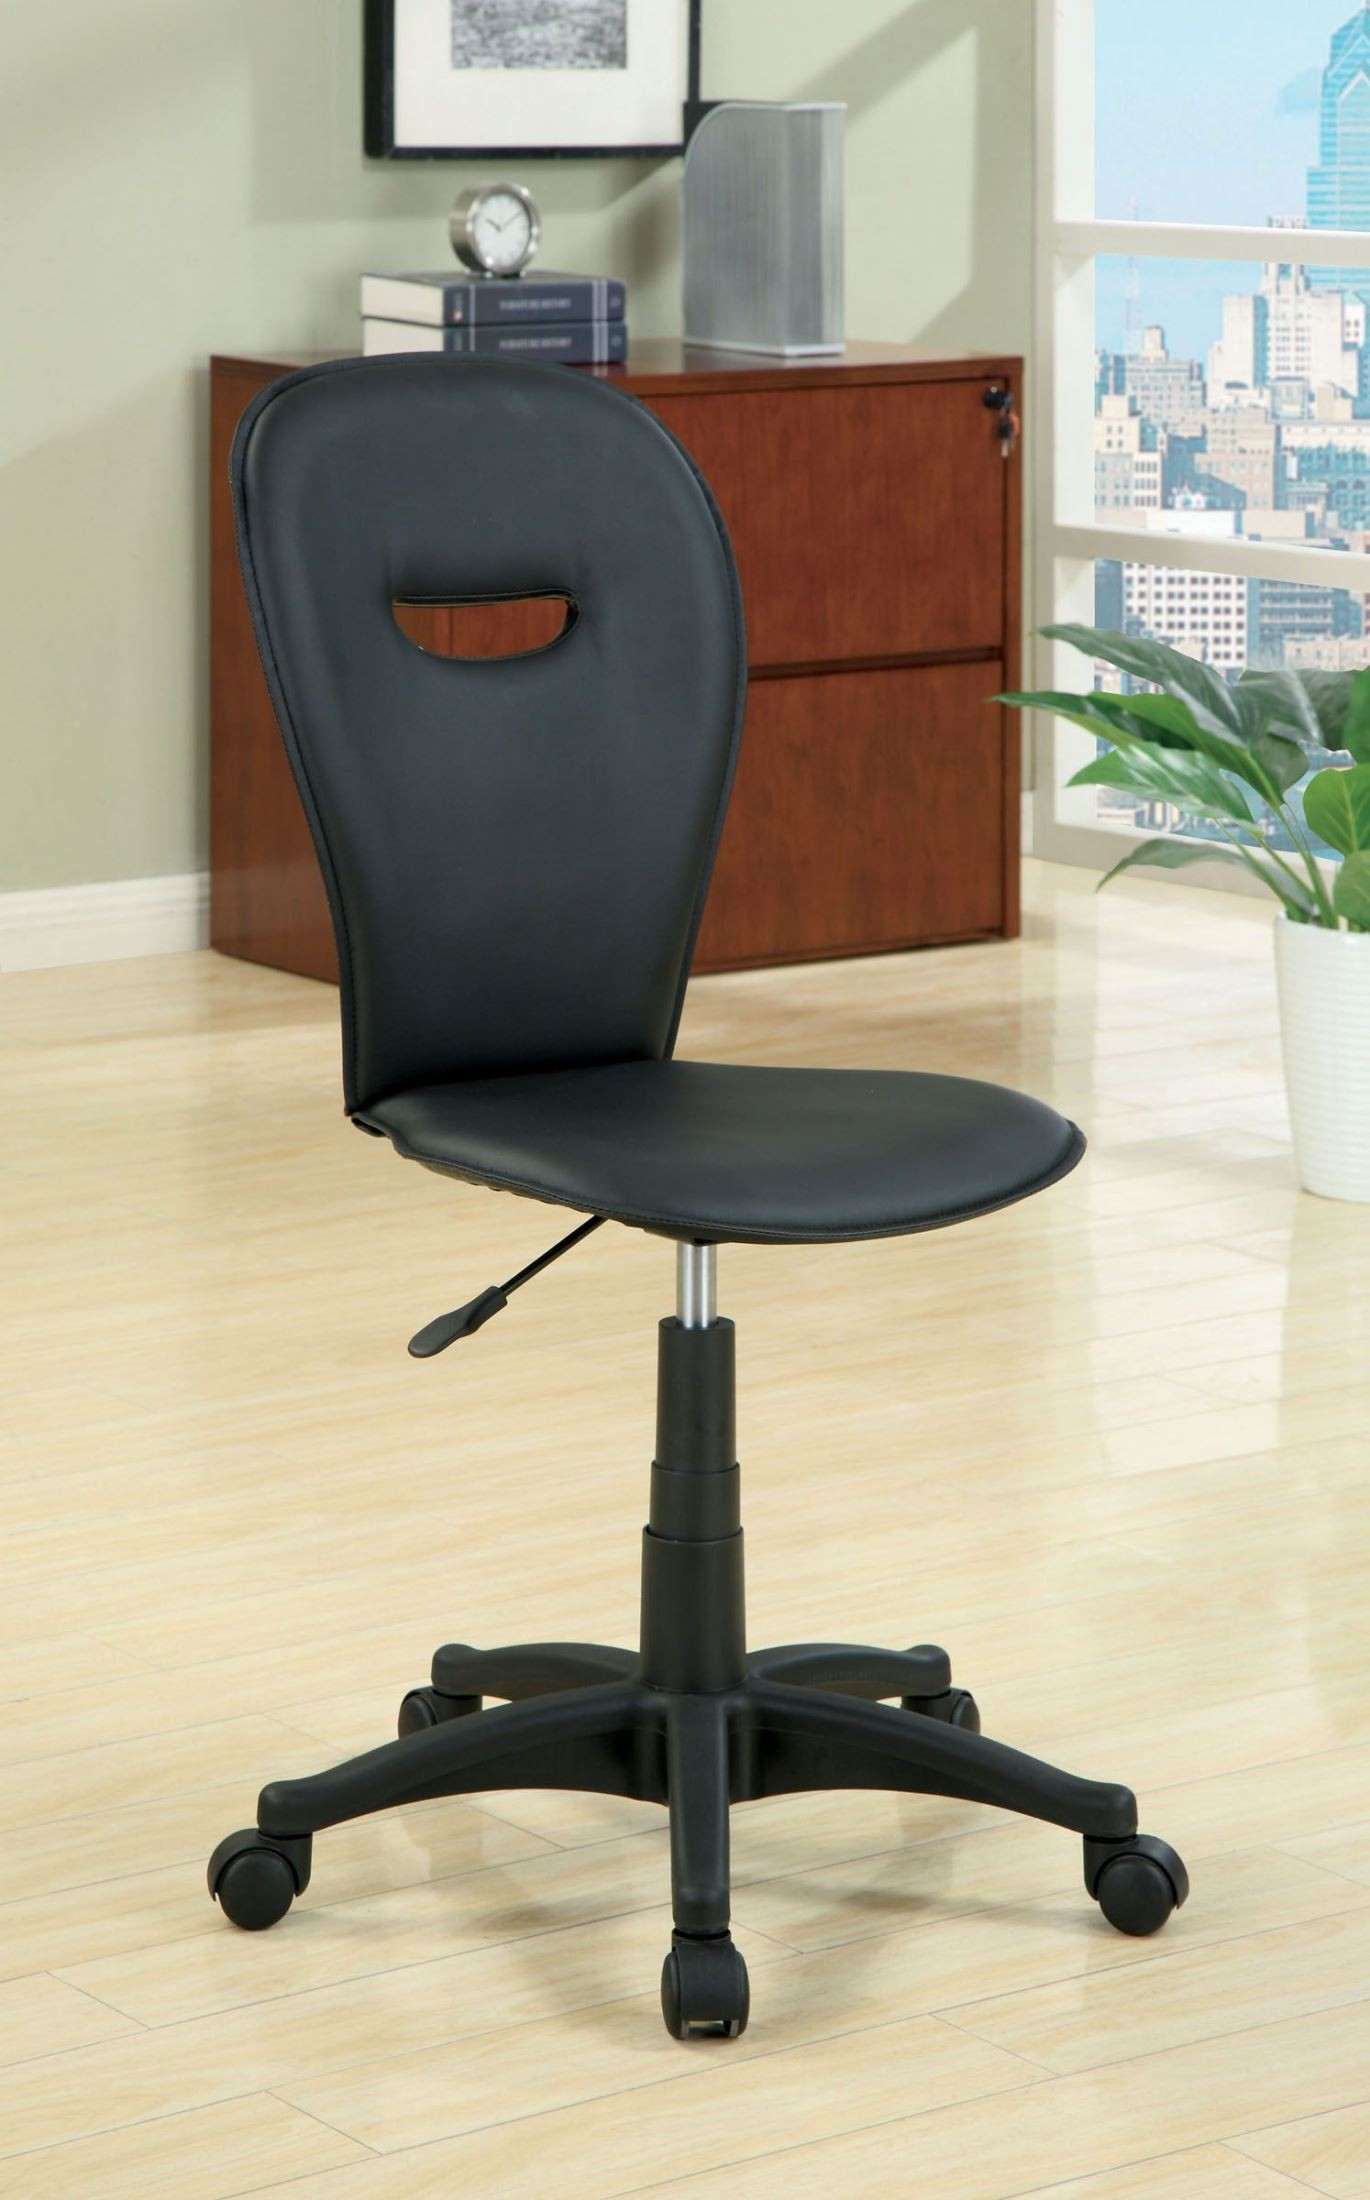 Somerton Adjustable Height Office Chair From Furniture Of